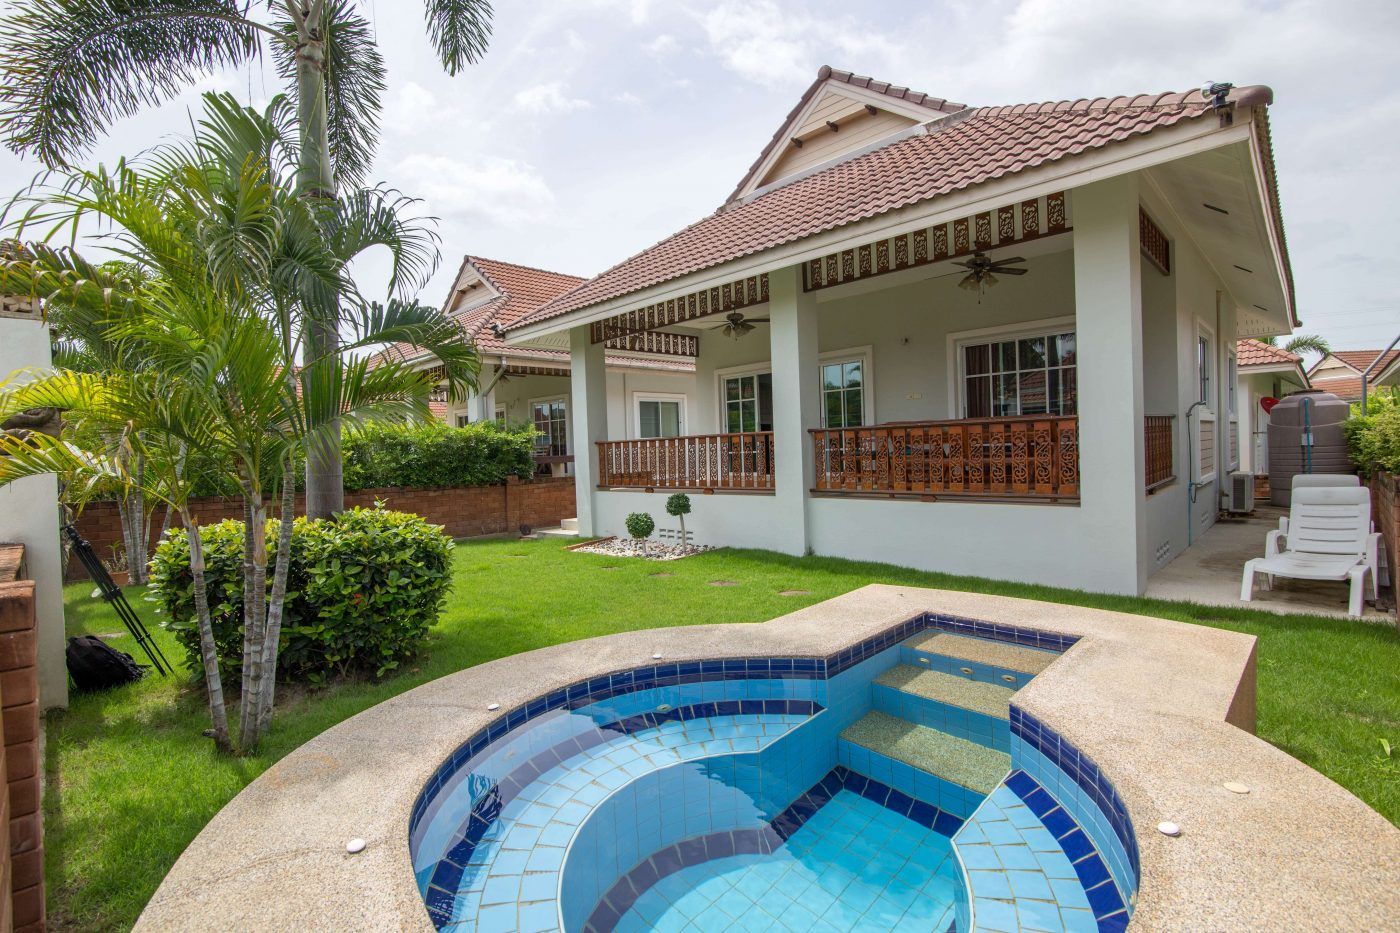 hua hin soi 88 villa for rent